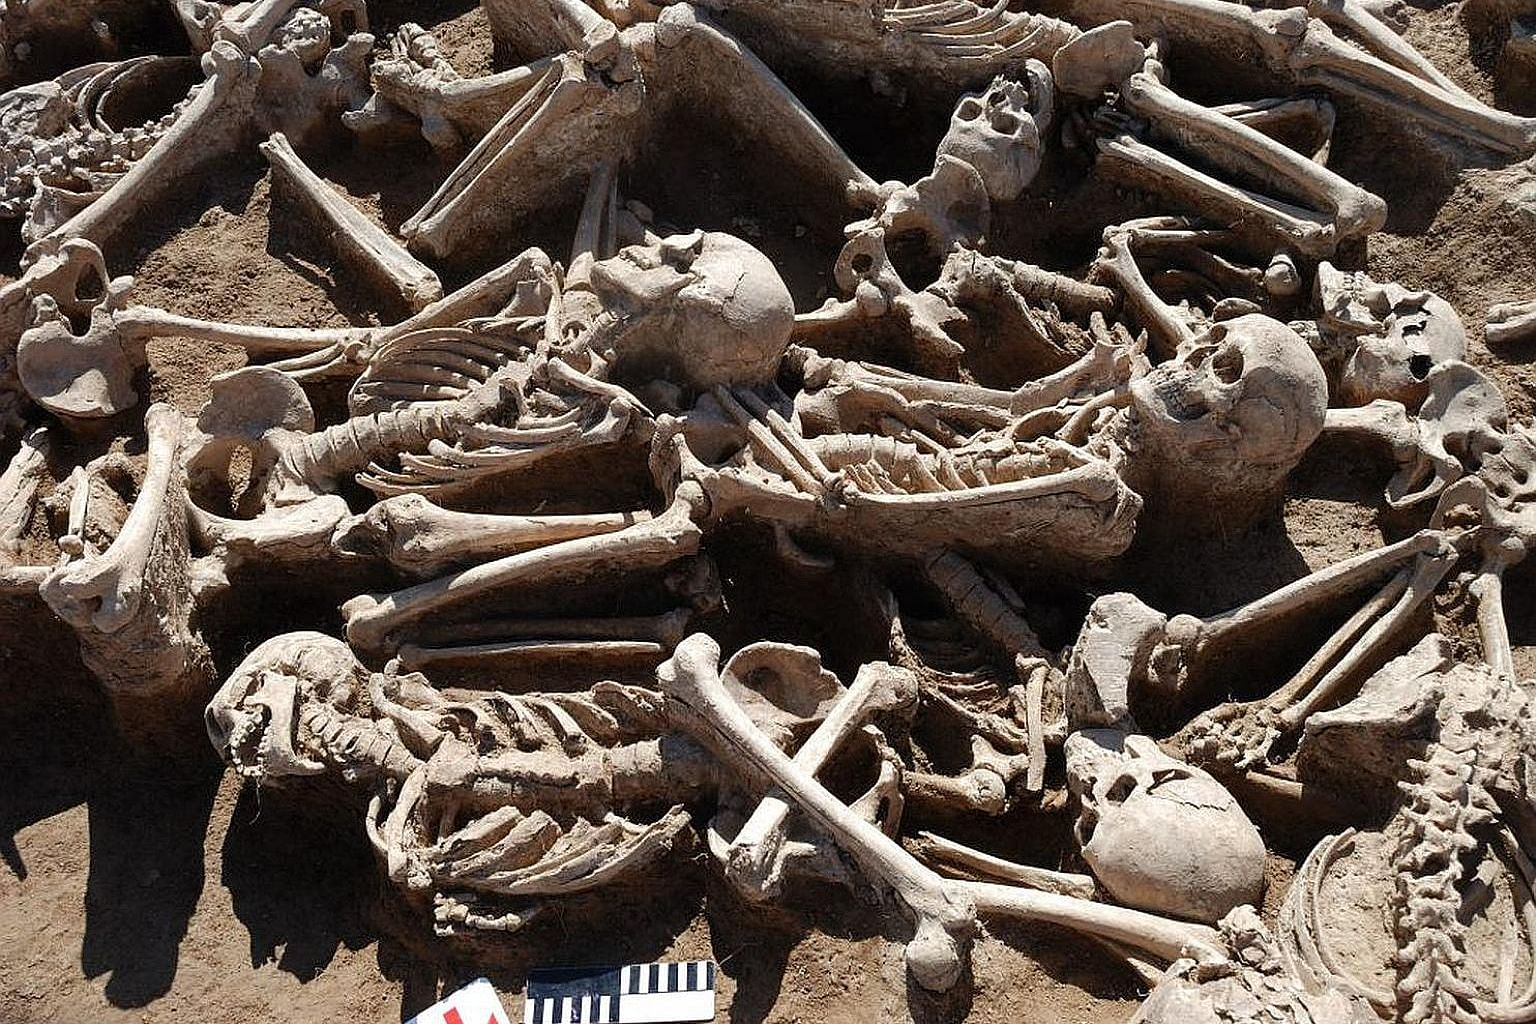 The hepatitis B virus was found in ancient humans, including a warrior buried in this mass grave in Omnogobi, Mongolia.